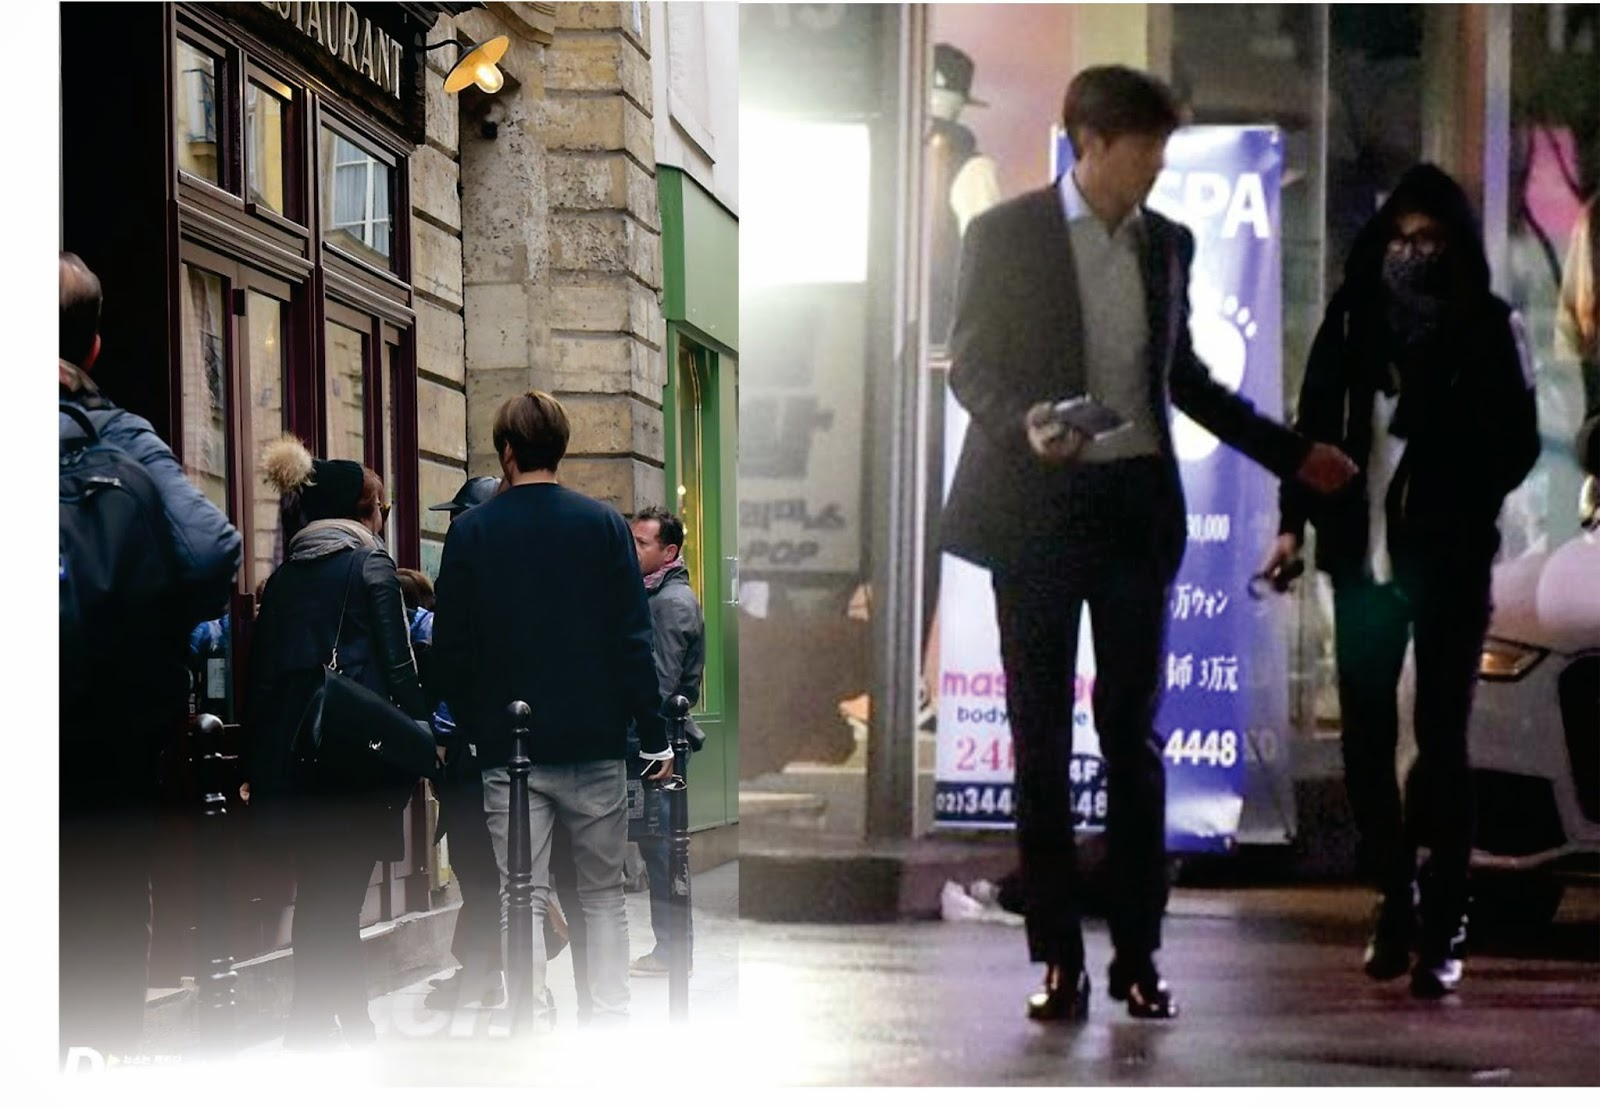 lee min ho and suzy dating di kota london,